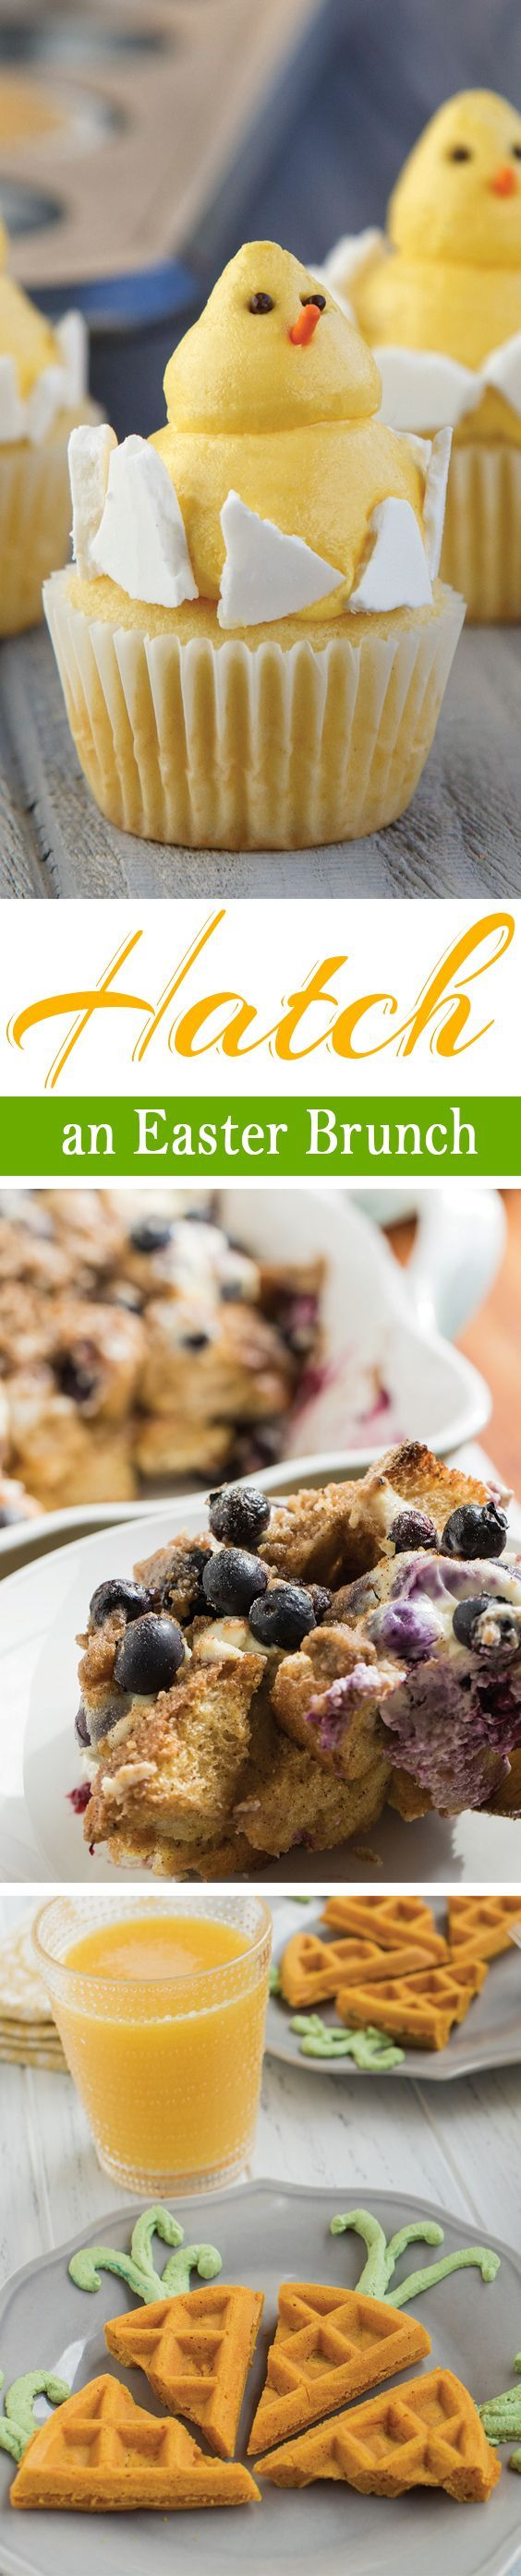 Hatch an Easter brunch to remember with these Baby Chick Cupcakes, Carrot-Shaped Waffles and Overnight Lemon Blueberry Muffin Casserole from McCormick Spice.